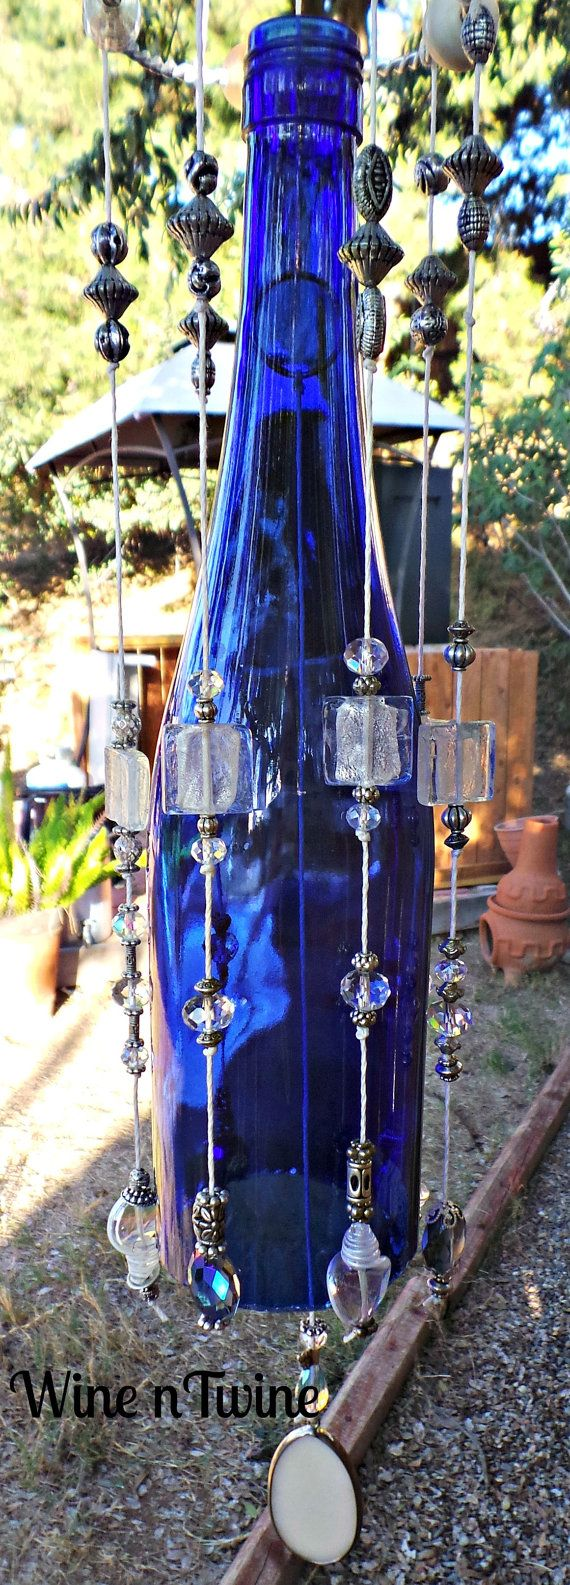 This is an original, one-of-a-kind wind chime. Made from a recycled wine bottle that is blue Tom has added a metal bracelet to the top and with a mixture of beads, baubles and charms hanging down it creates a lovey sound for any backyard or patio. Thank you for stopping by our shop! Tom and Diane